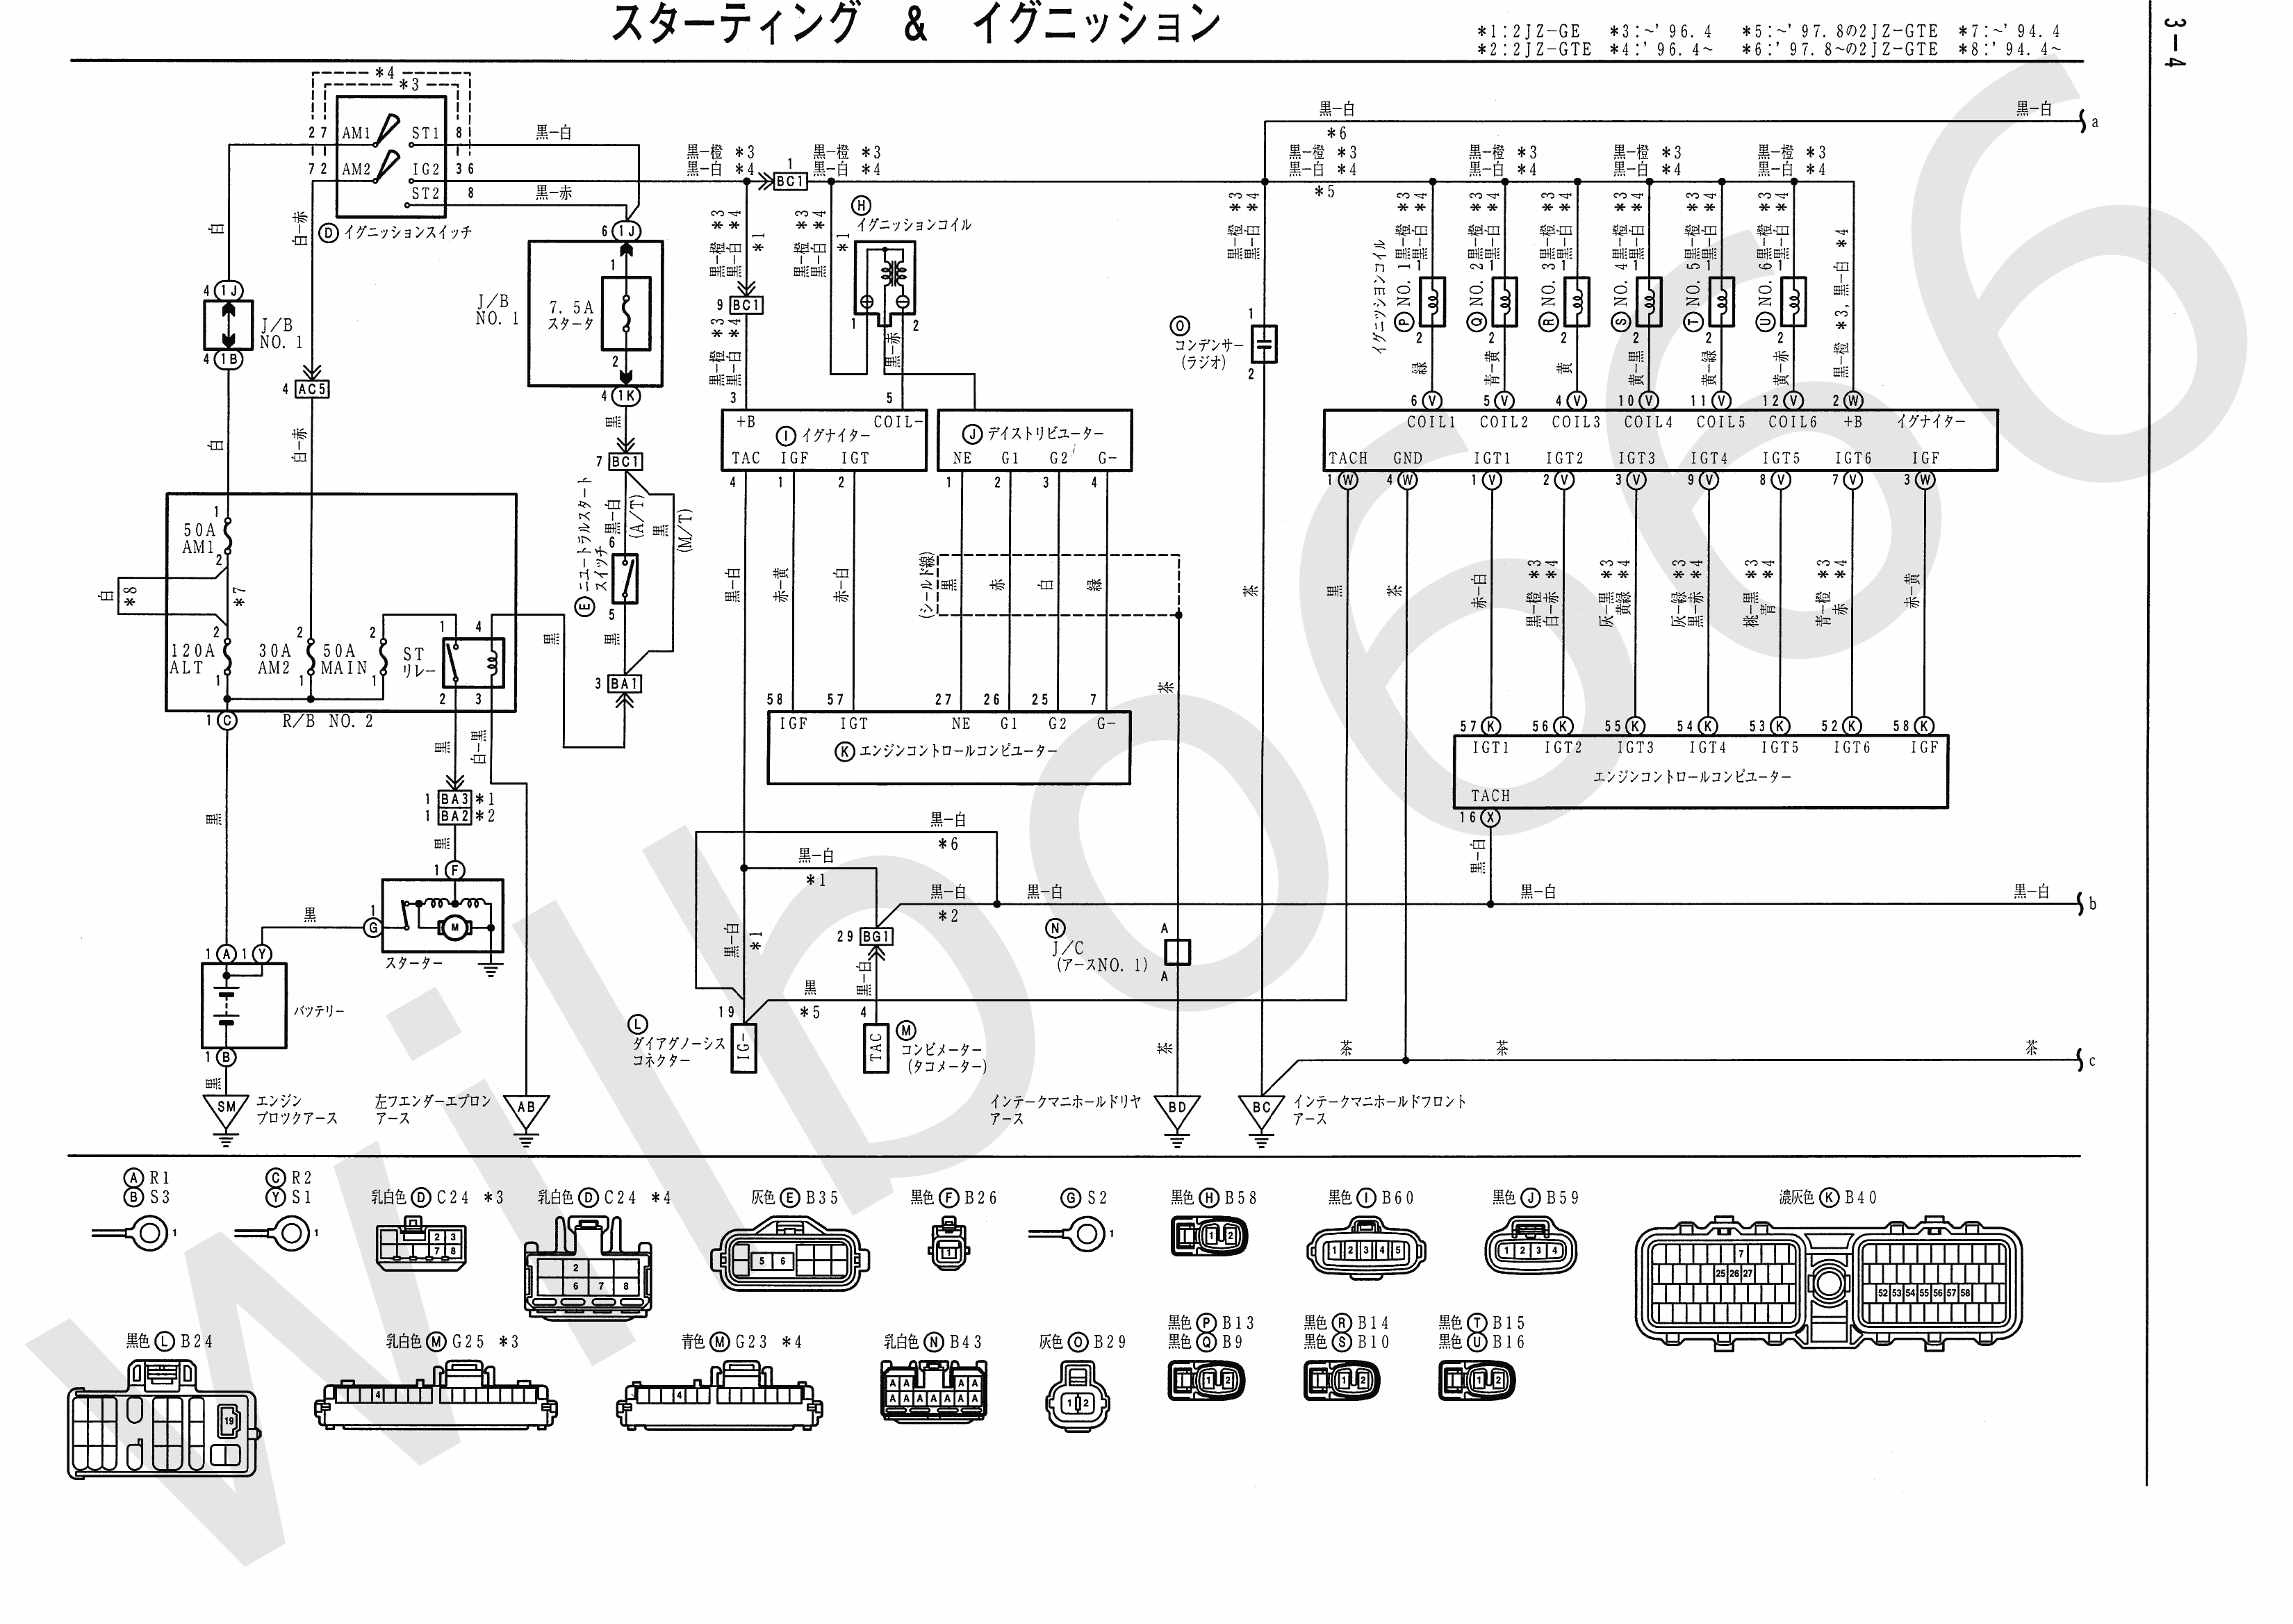 JZA80 Electrical Wiring Diagram 6742505 3 4 wilbo666 2jz ge jza80 supra engine wiring Toyota Stereo Wiring Diagram at gsmx.co